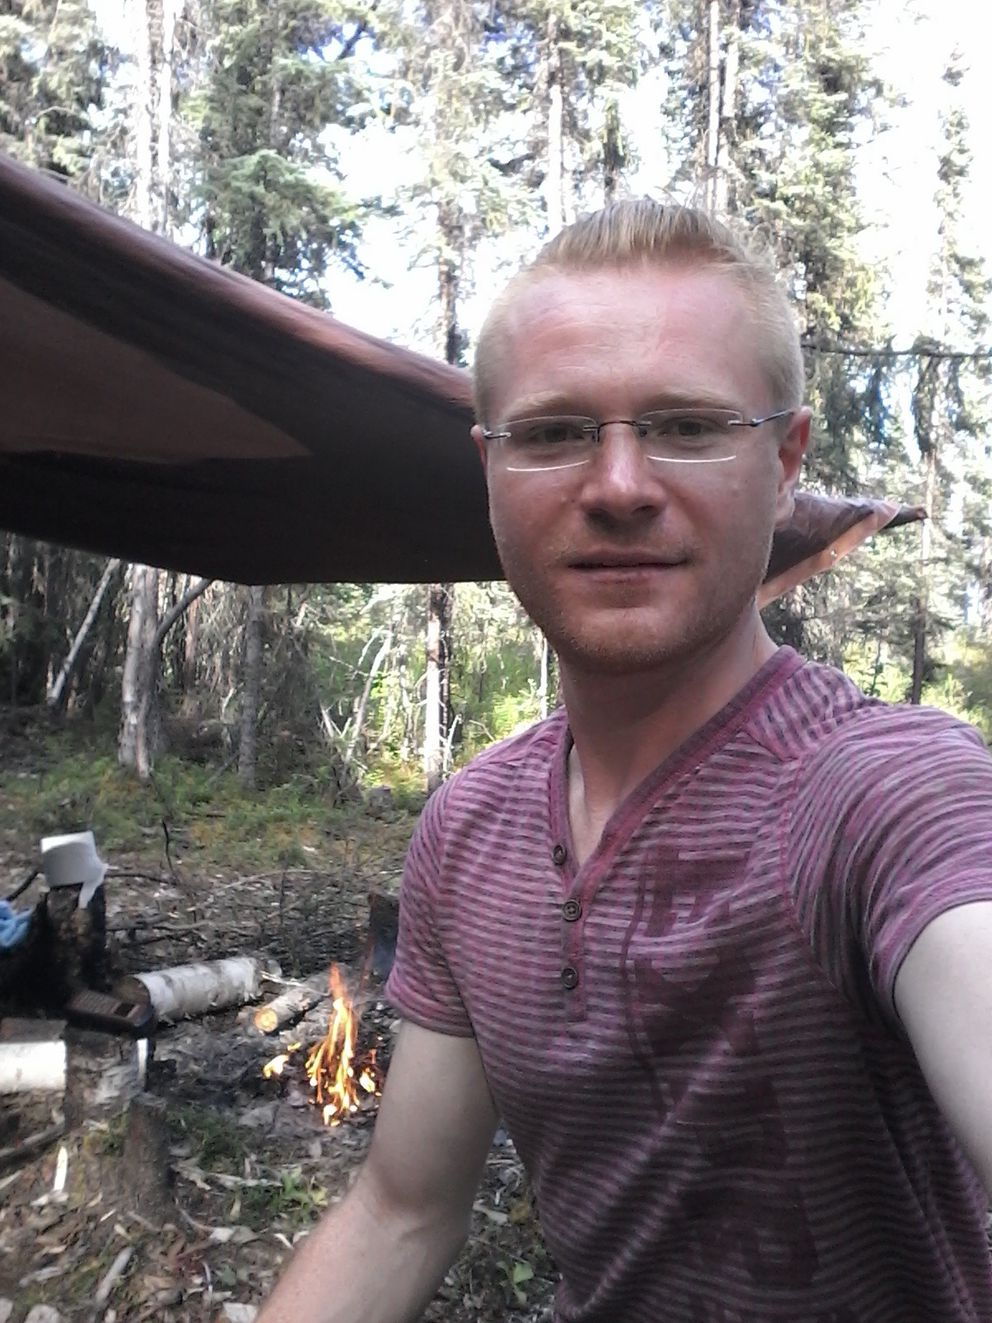 Vladimir Yakushin, 29, is pictured on June 24, 2016, at Chleca Lakes in Interior Alaska at the partially built cabin of another adventurer that he borrowed. He had hoped to build his own cabin this summer. Alaska State Troopers rescued him from the North Fork Kuskokwim River on Wednesday. (Photo courtesy of Vladimir Yakushin)